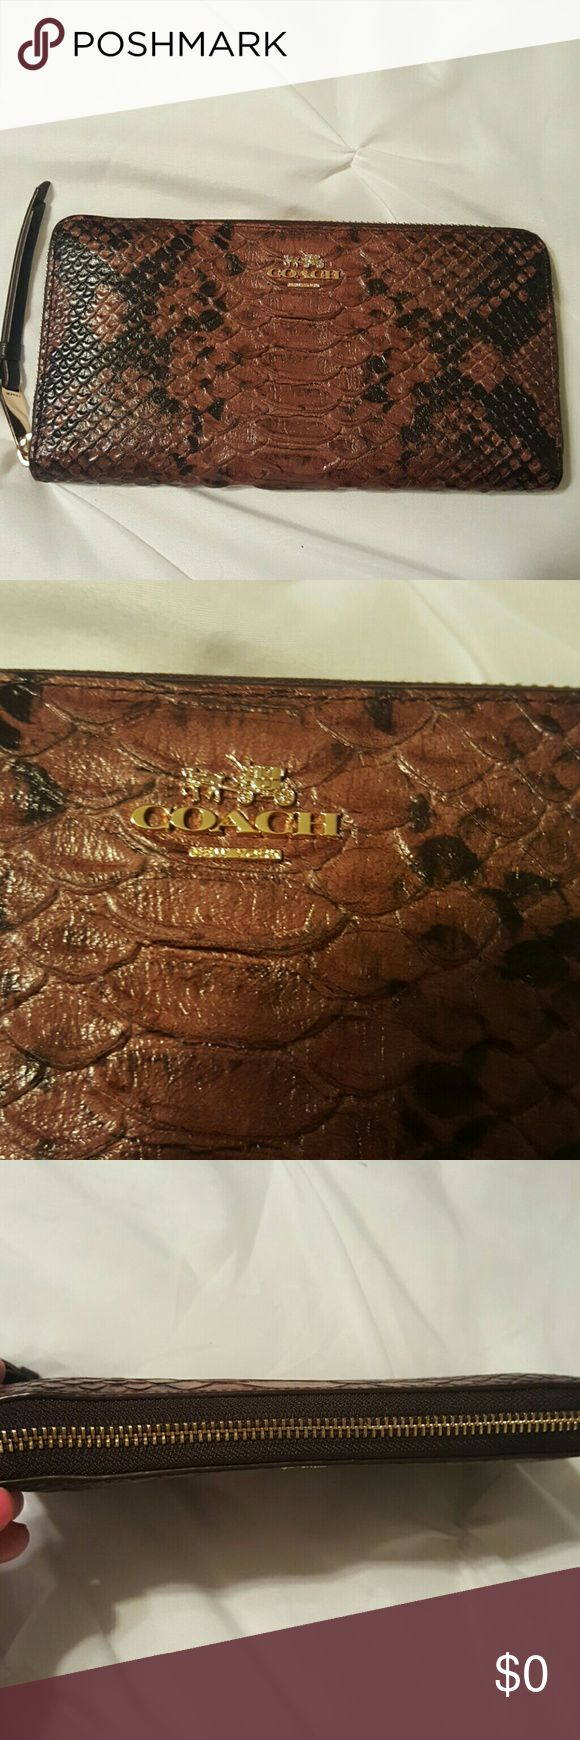 Authentic Coach Wallet Brown and black leather in new condition holds six cards snakeskin Coach Bags Wallets